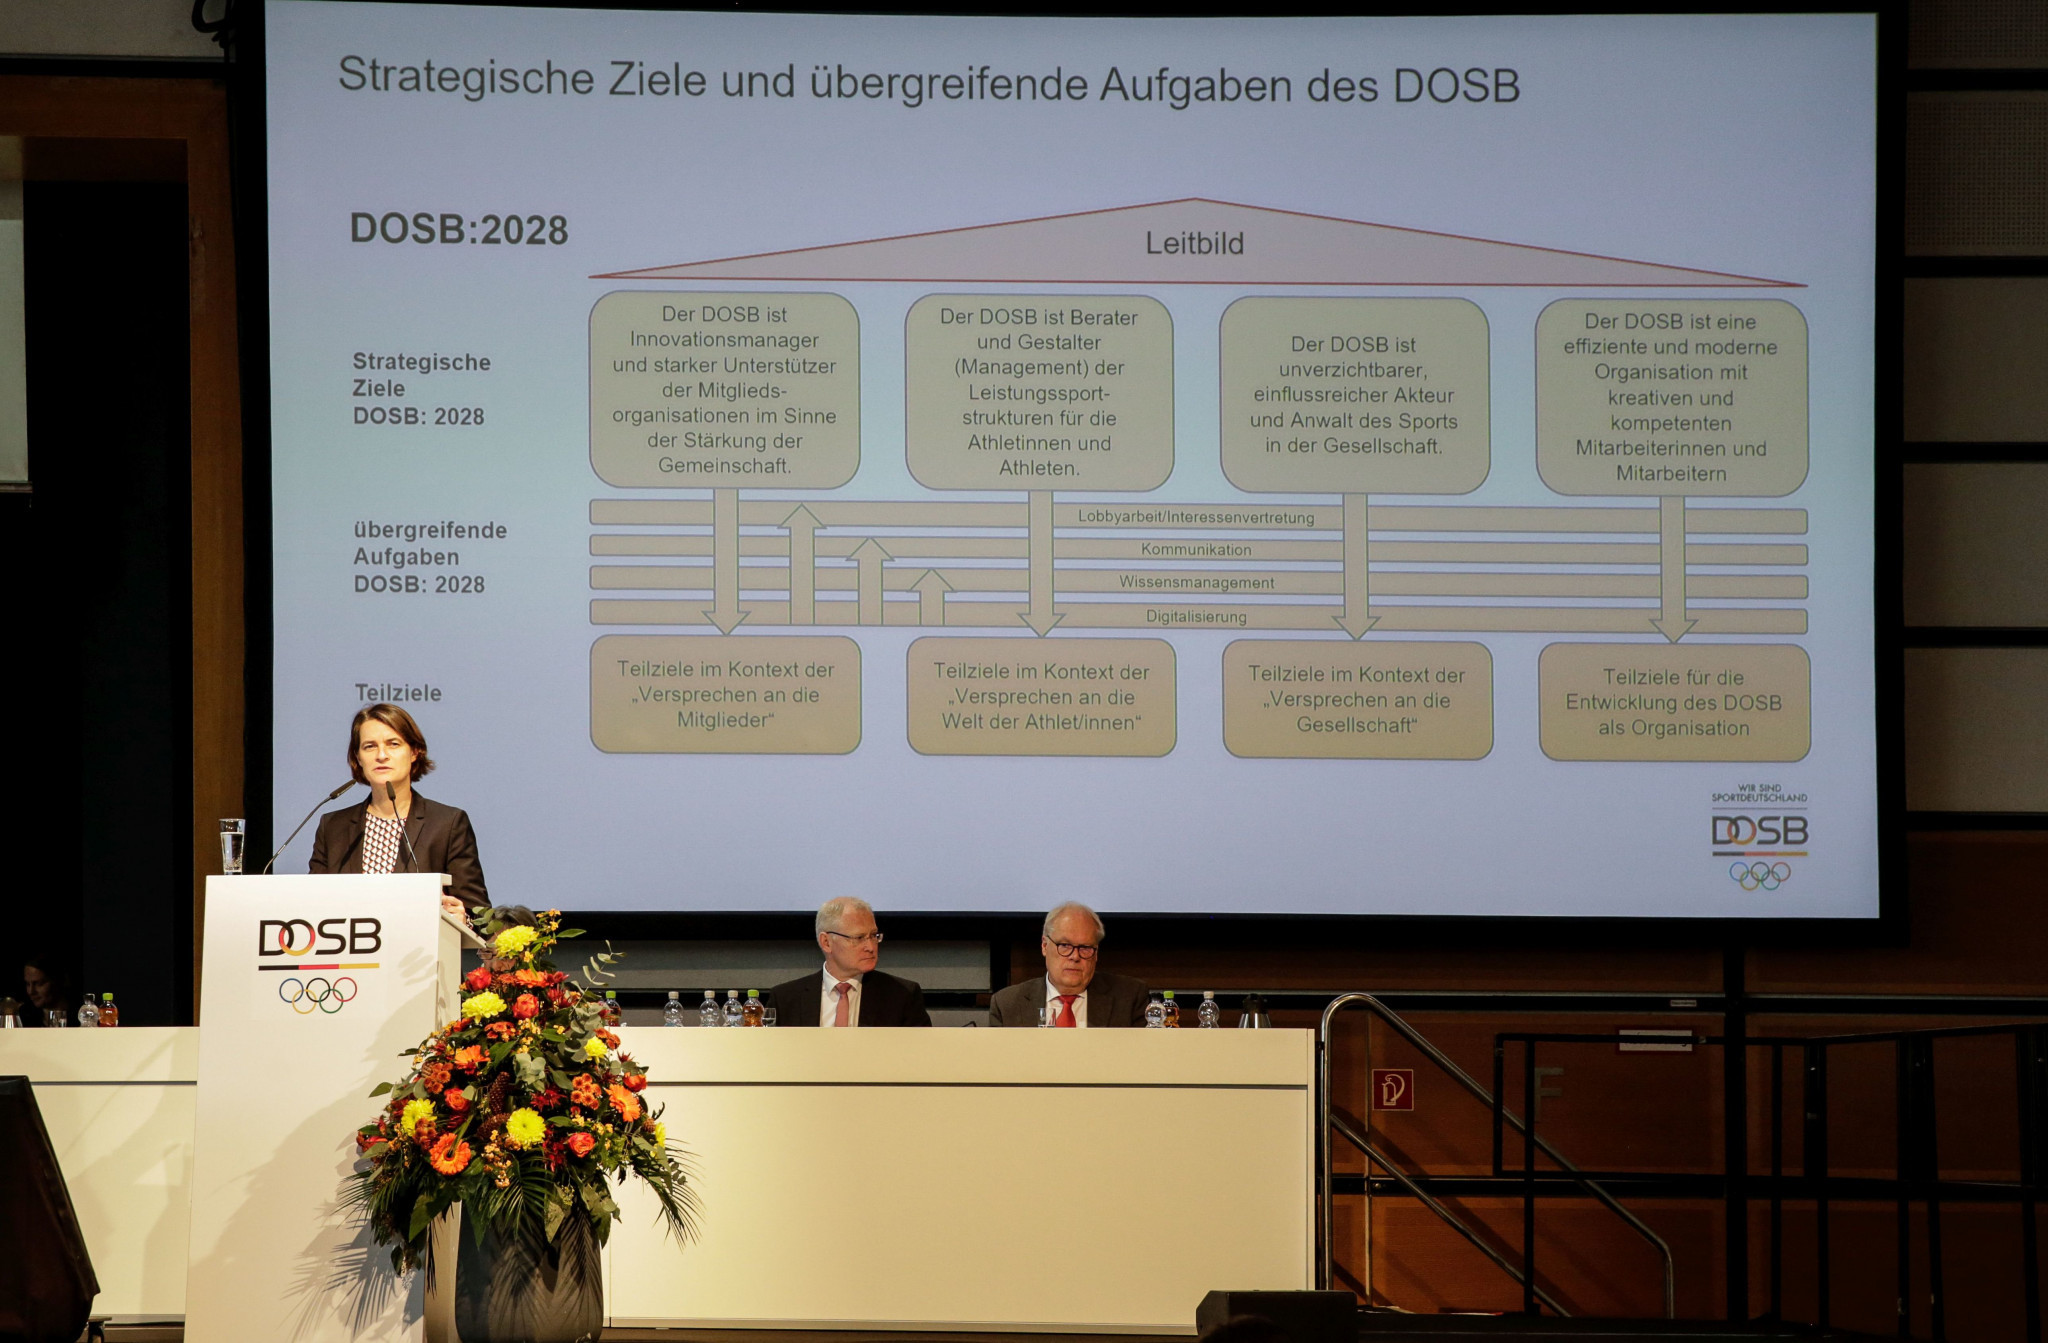 DOSB chef executive Veronika Rücker presented the strategy of the DOSB until 2028 at the General Assembly, including the organisation's controversial policy on esports ©DOSB